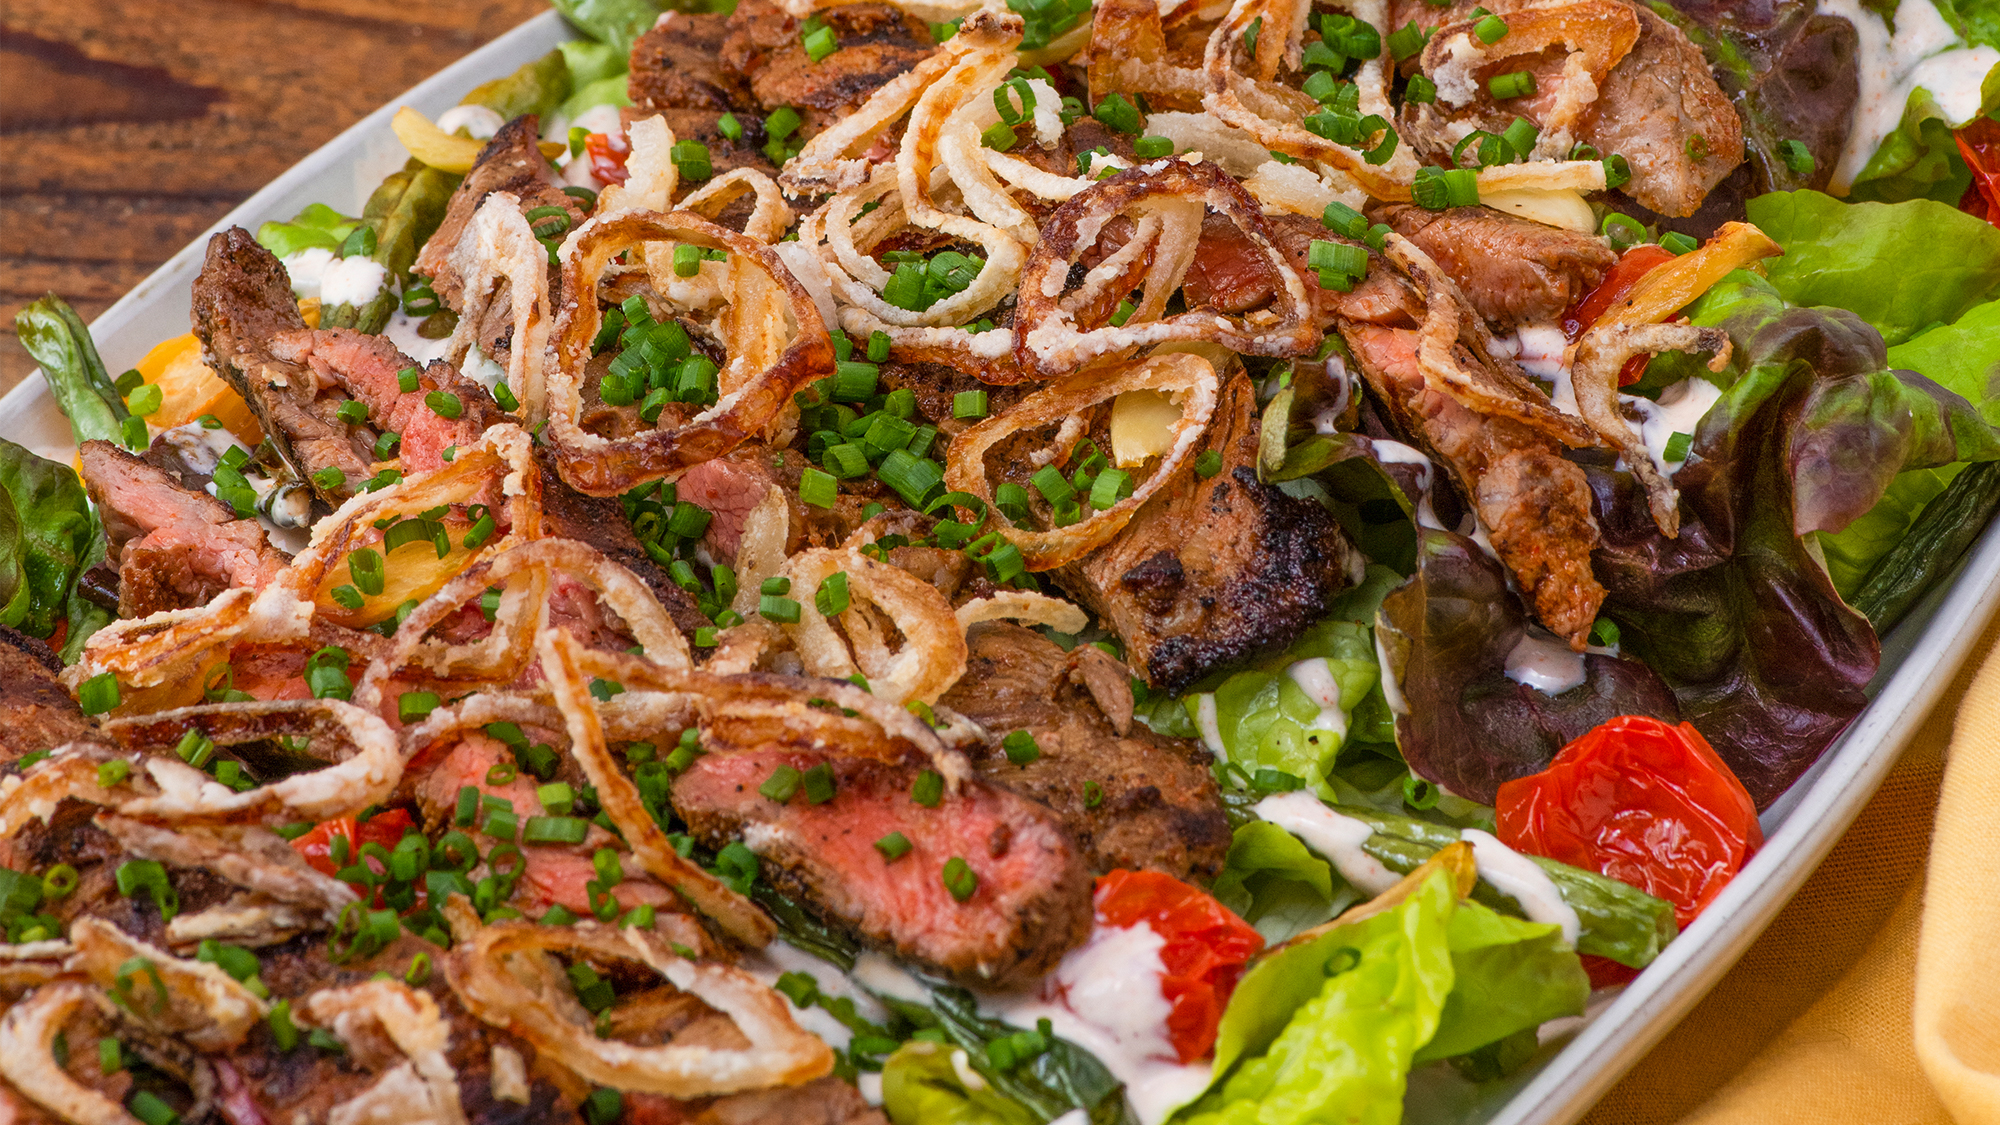 McCormick Jazzy Steak Salad